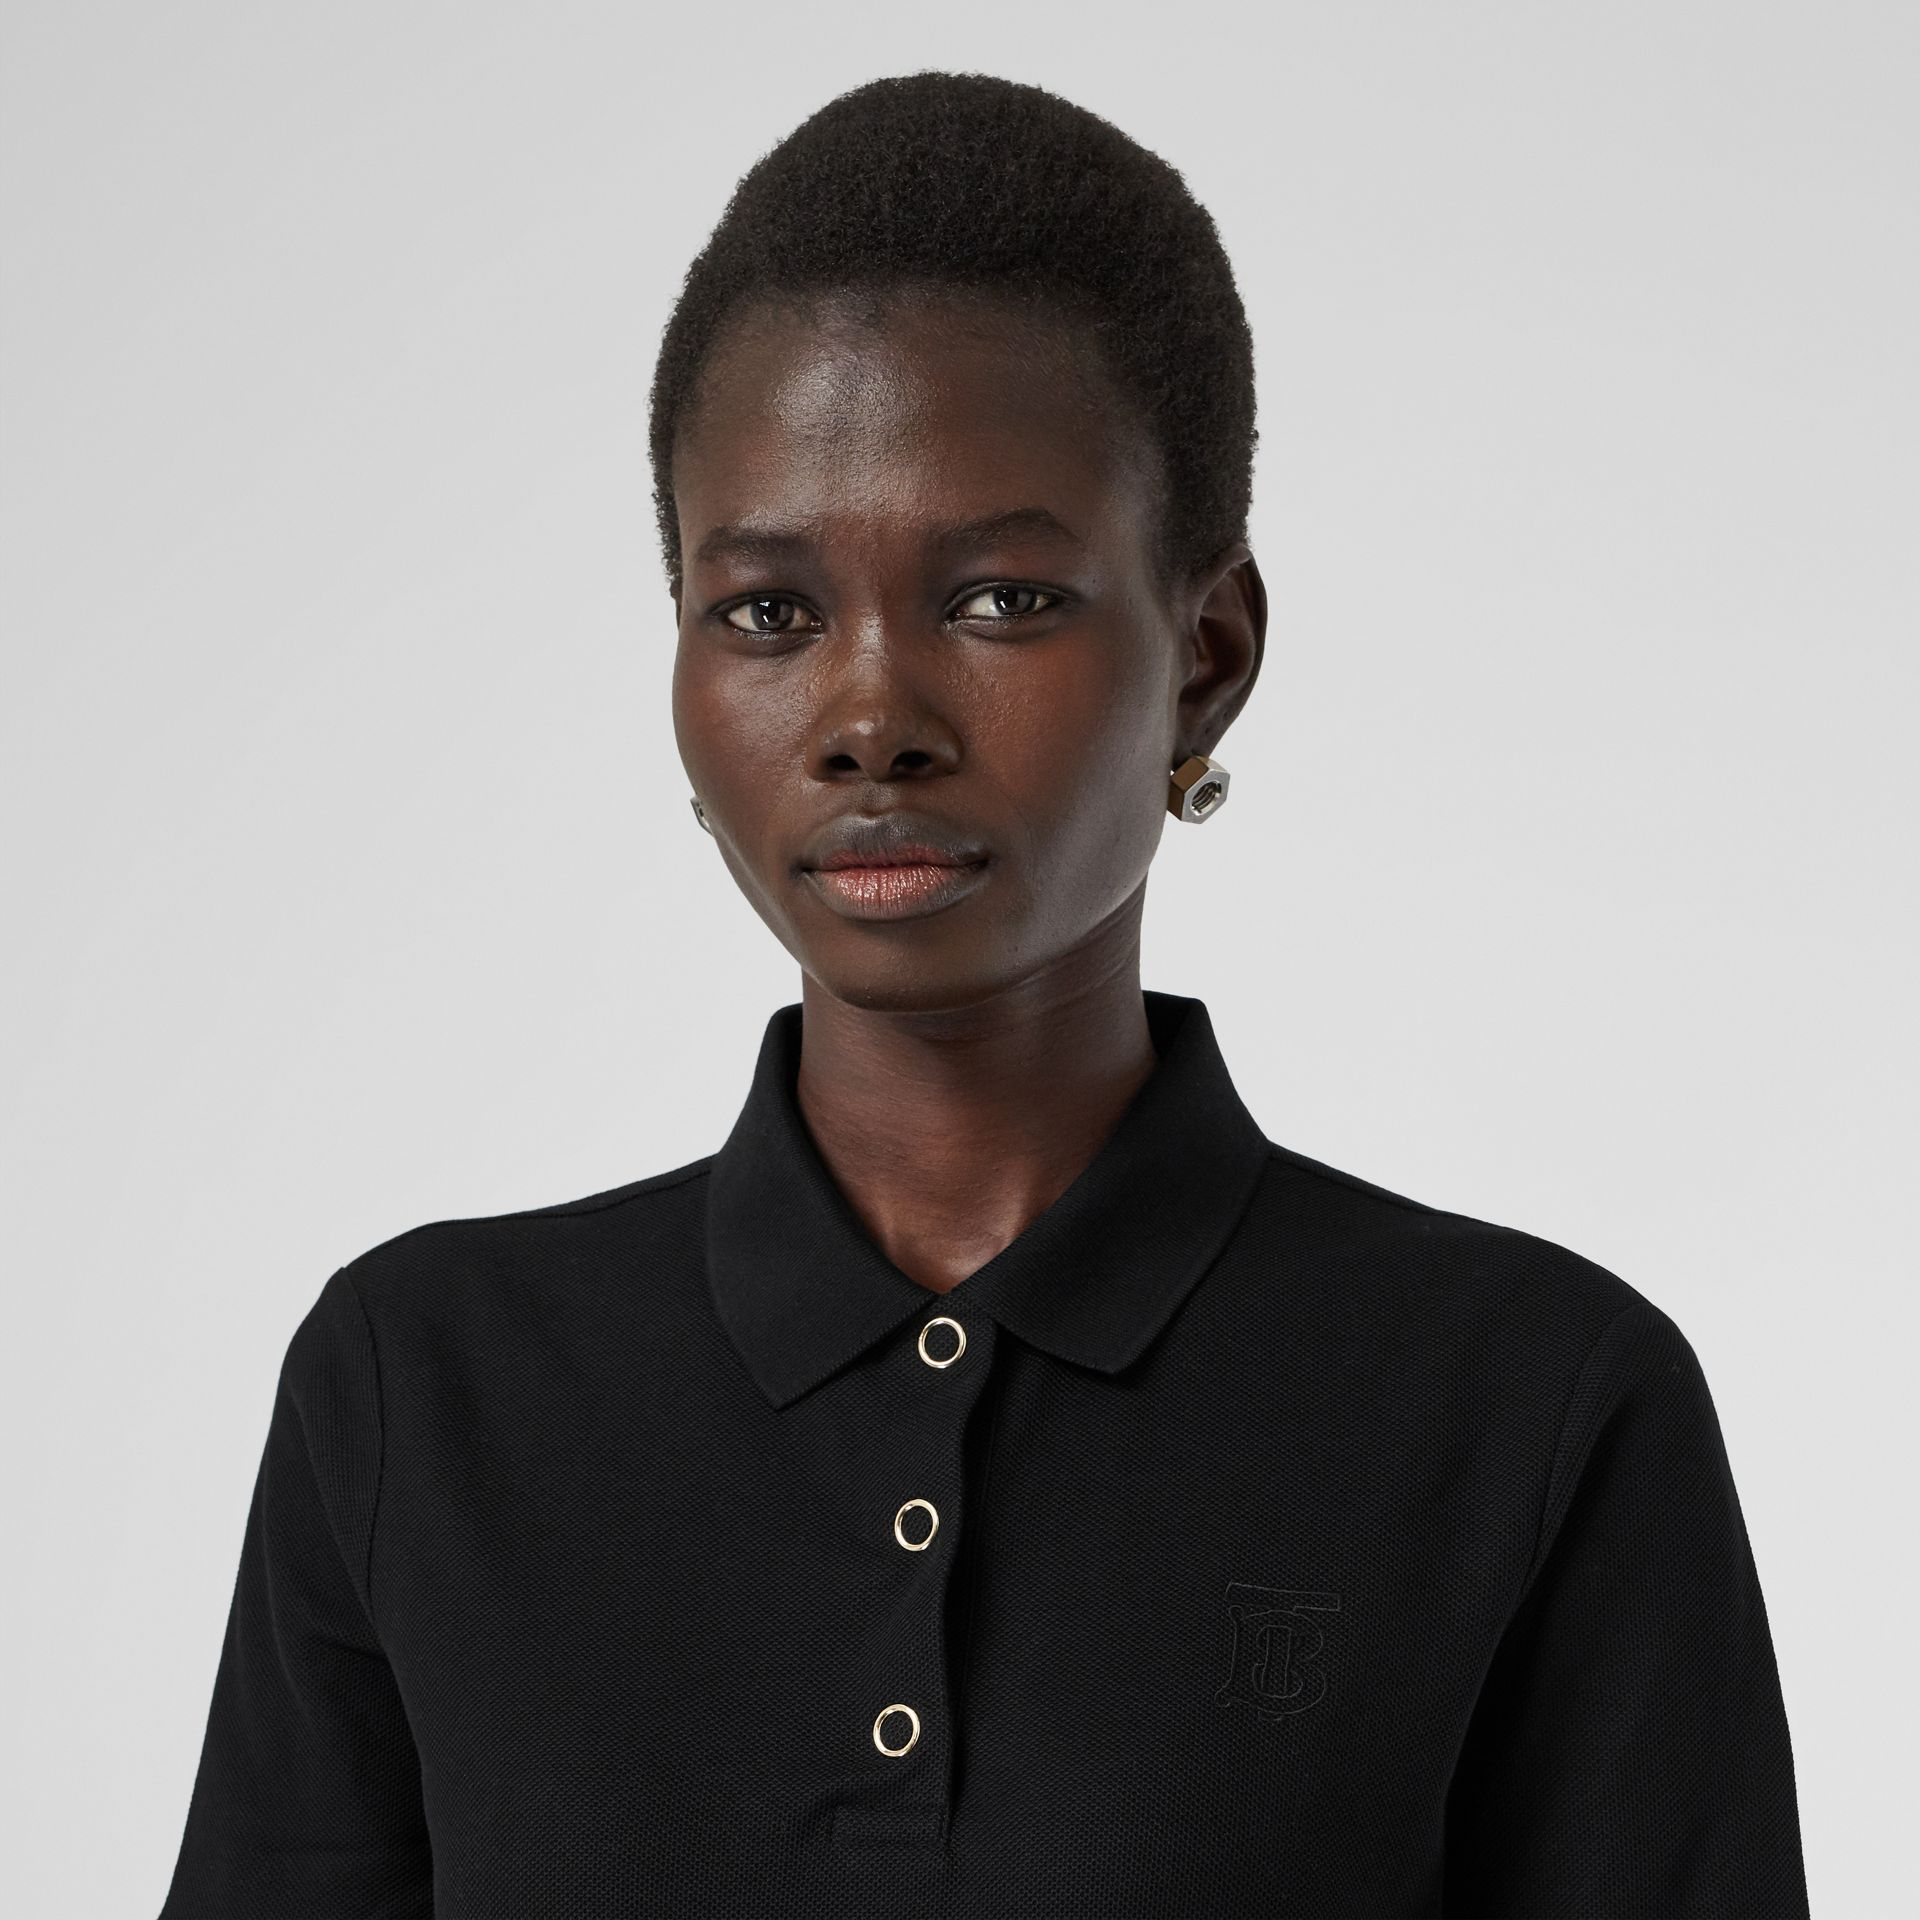 Monogram Motif Cotton Piqué Polo Shirt in Black - Women | Burberry - gallery image 1